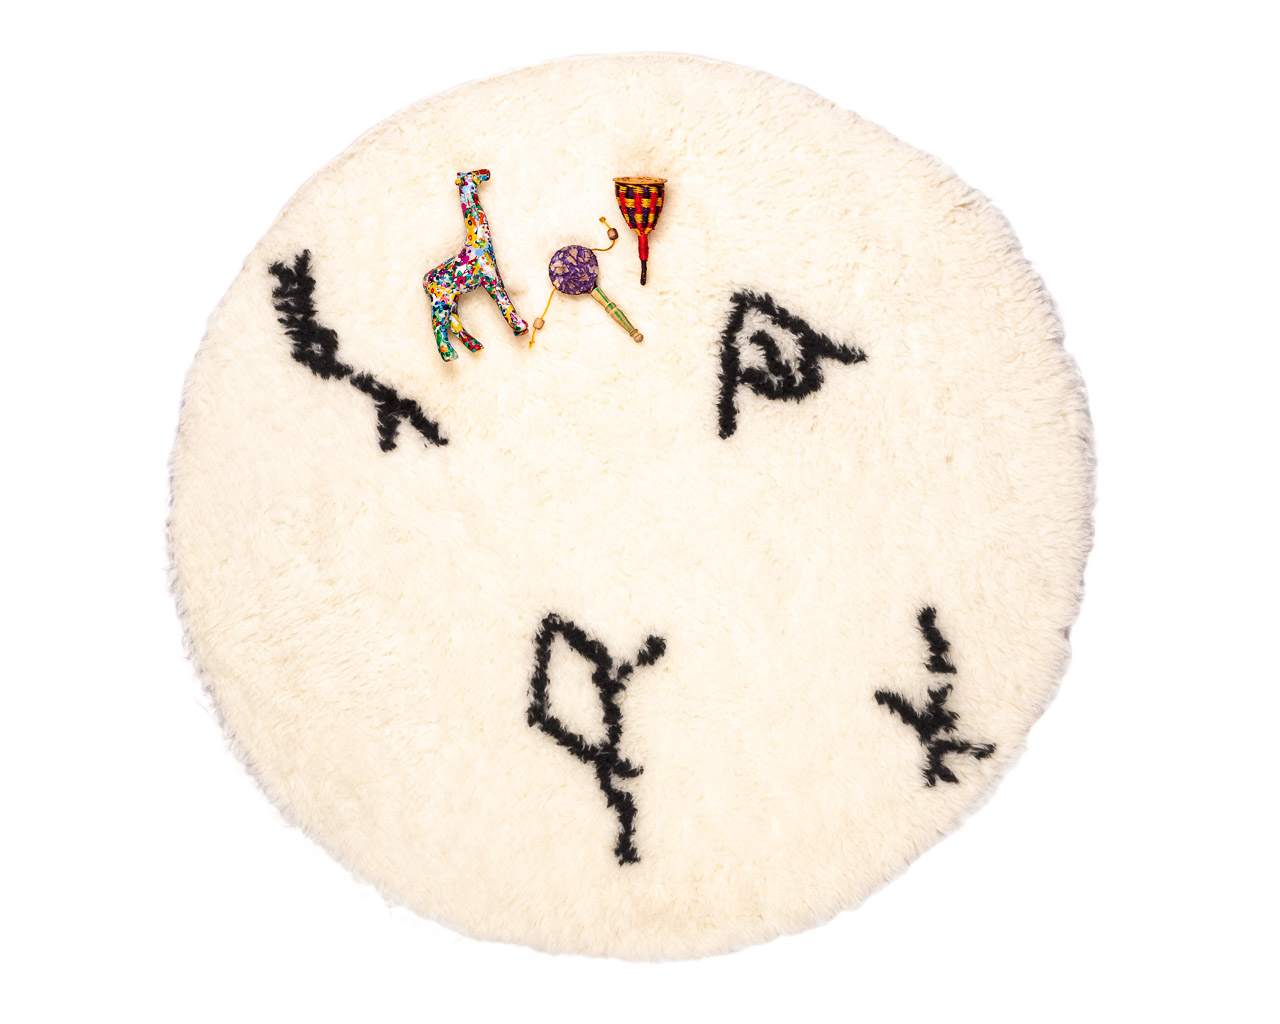 round-rug-in-white-color-with-black-symbols